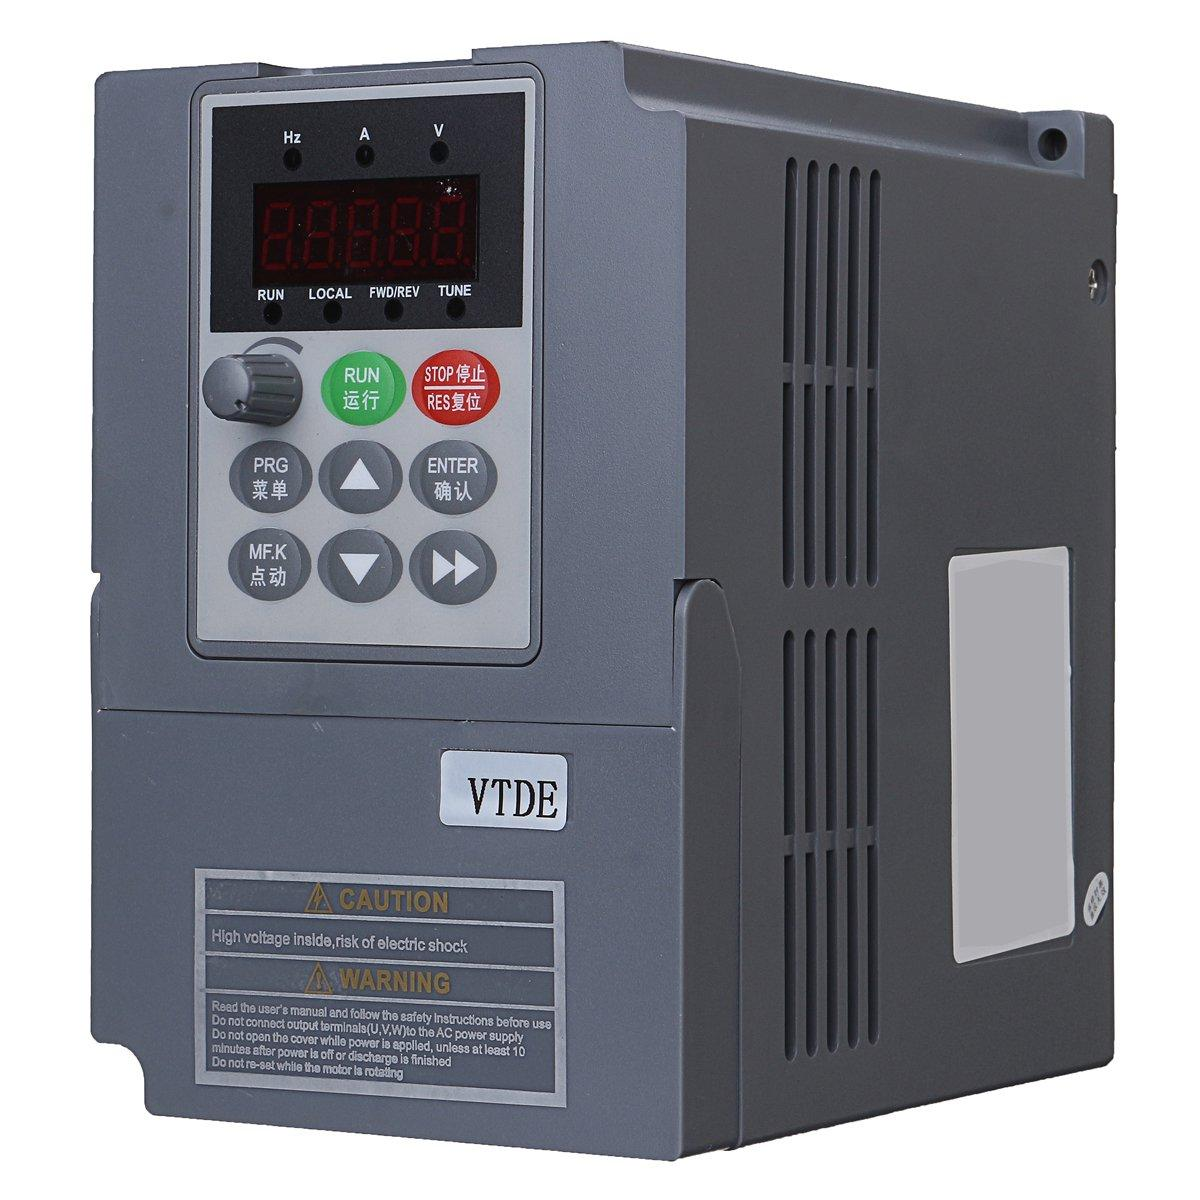 Static Inverter Drive : Kw ph v vfd inverter drive variable frequency